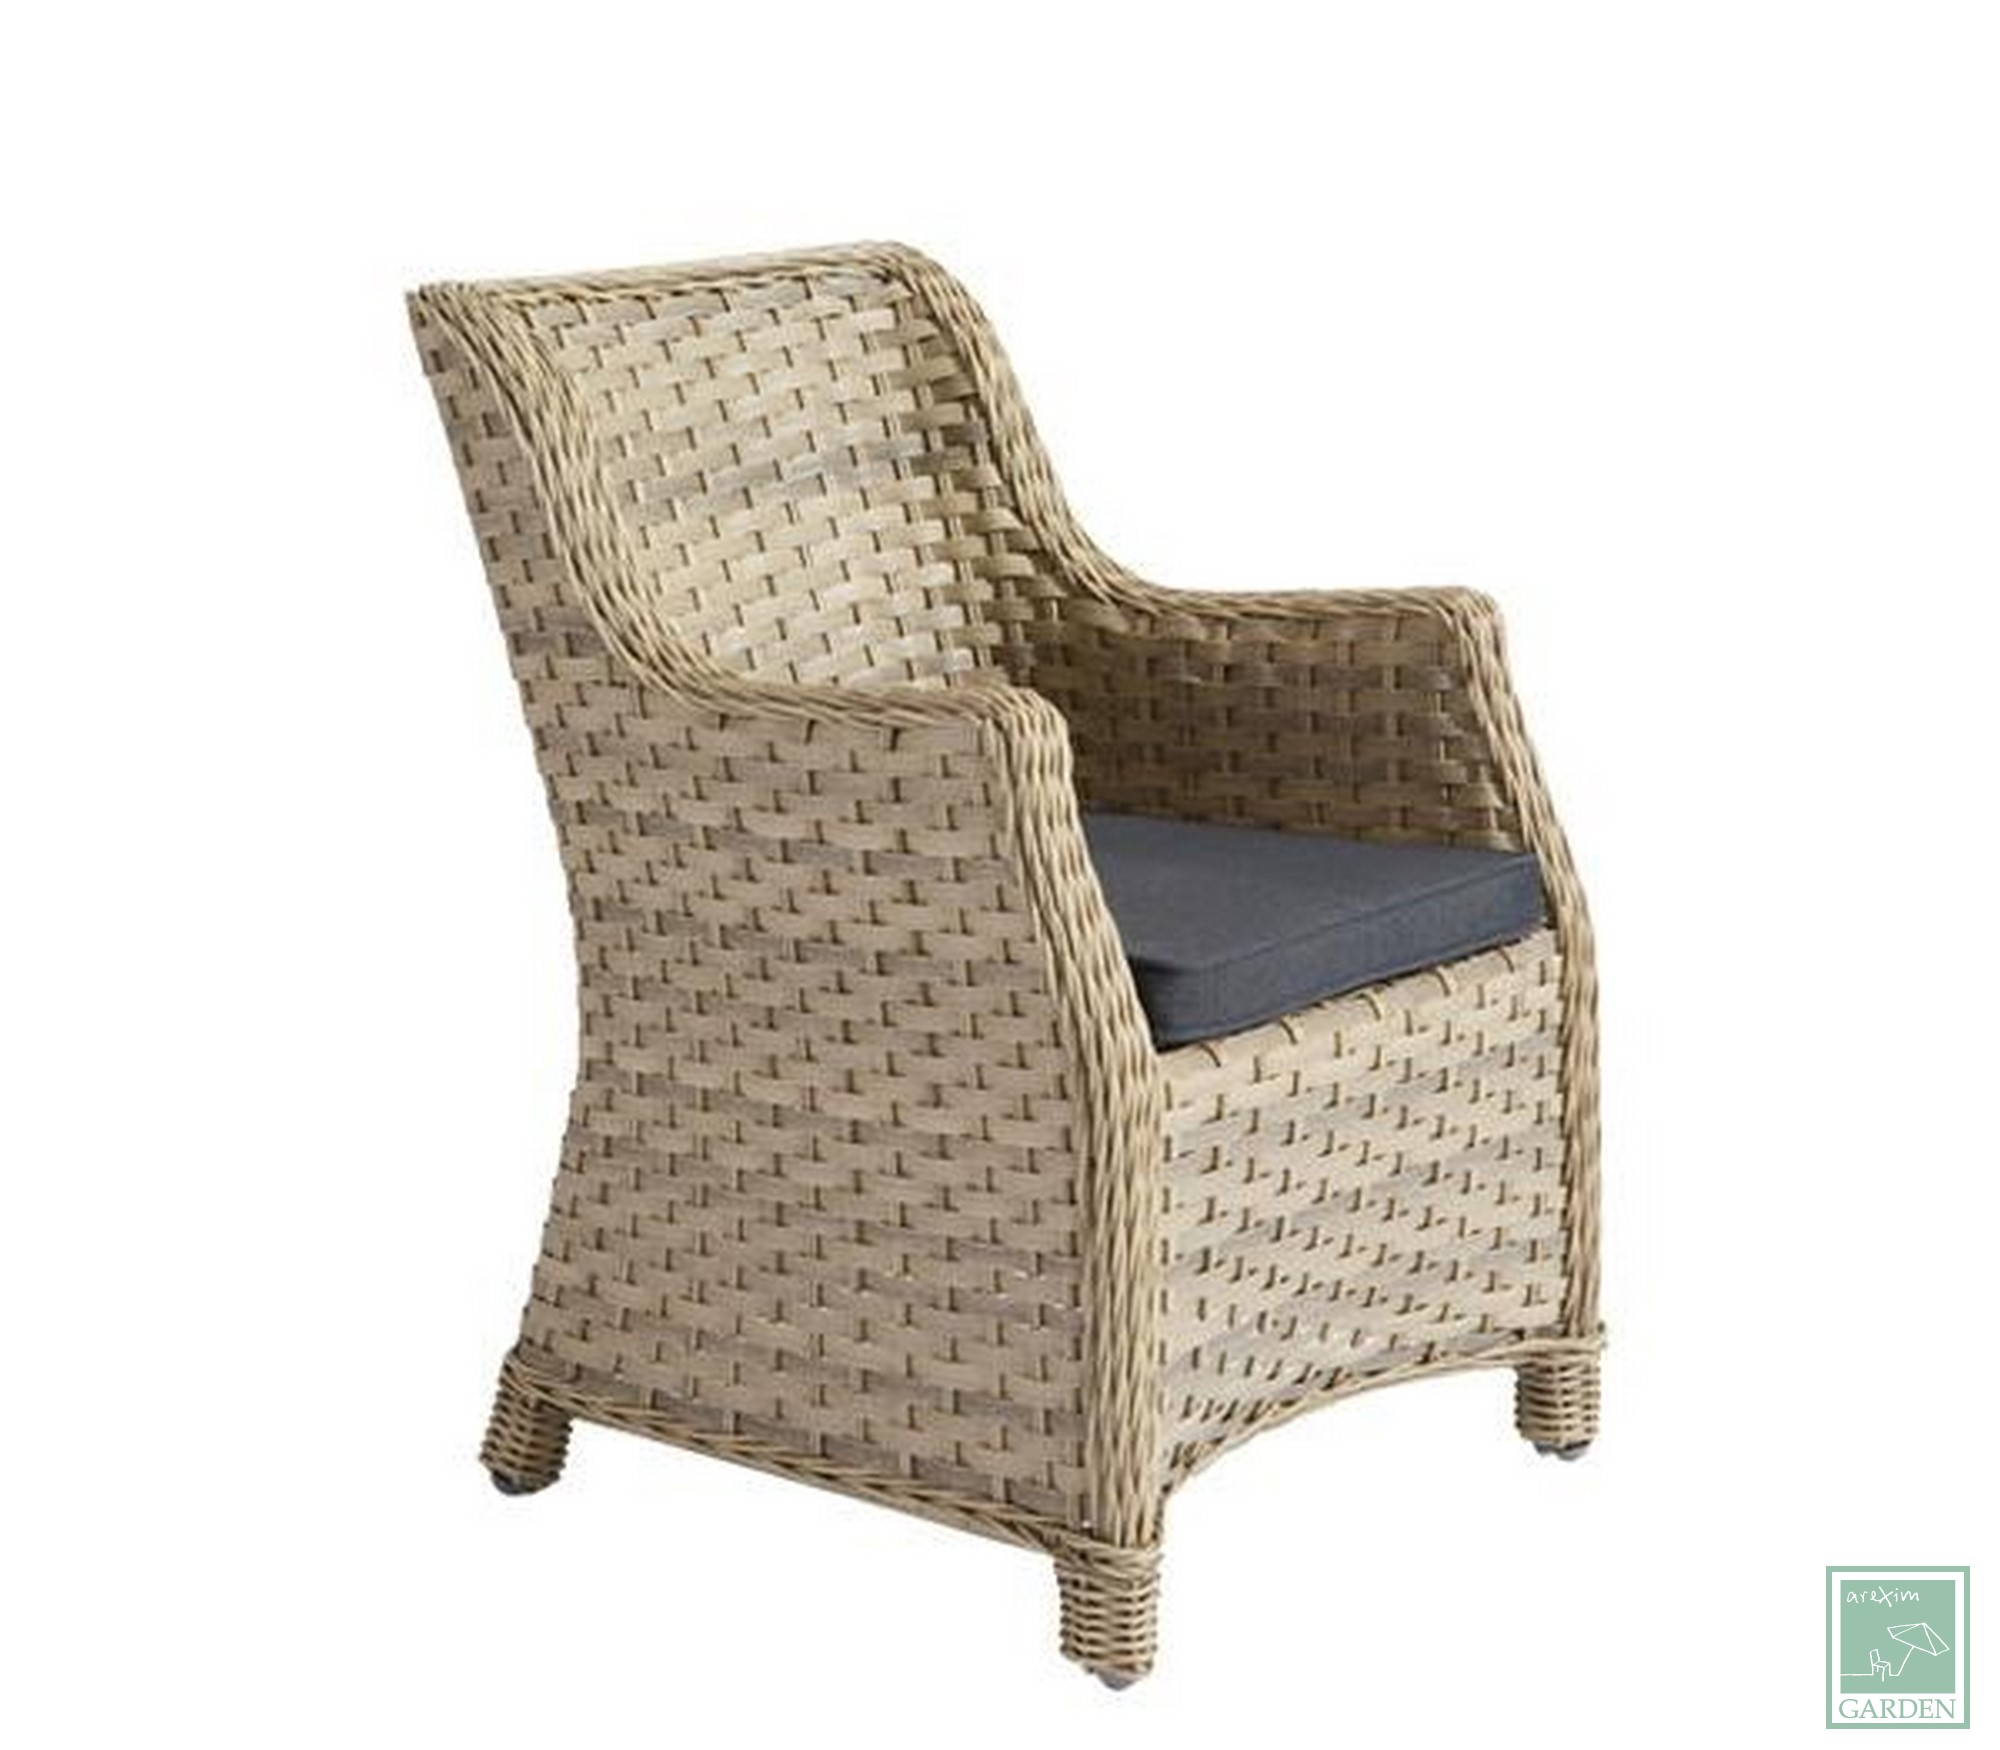 Wicker armchair WE6771